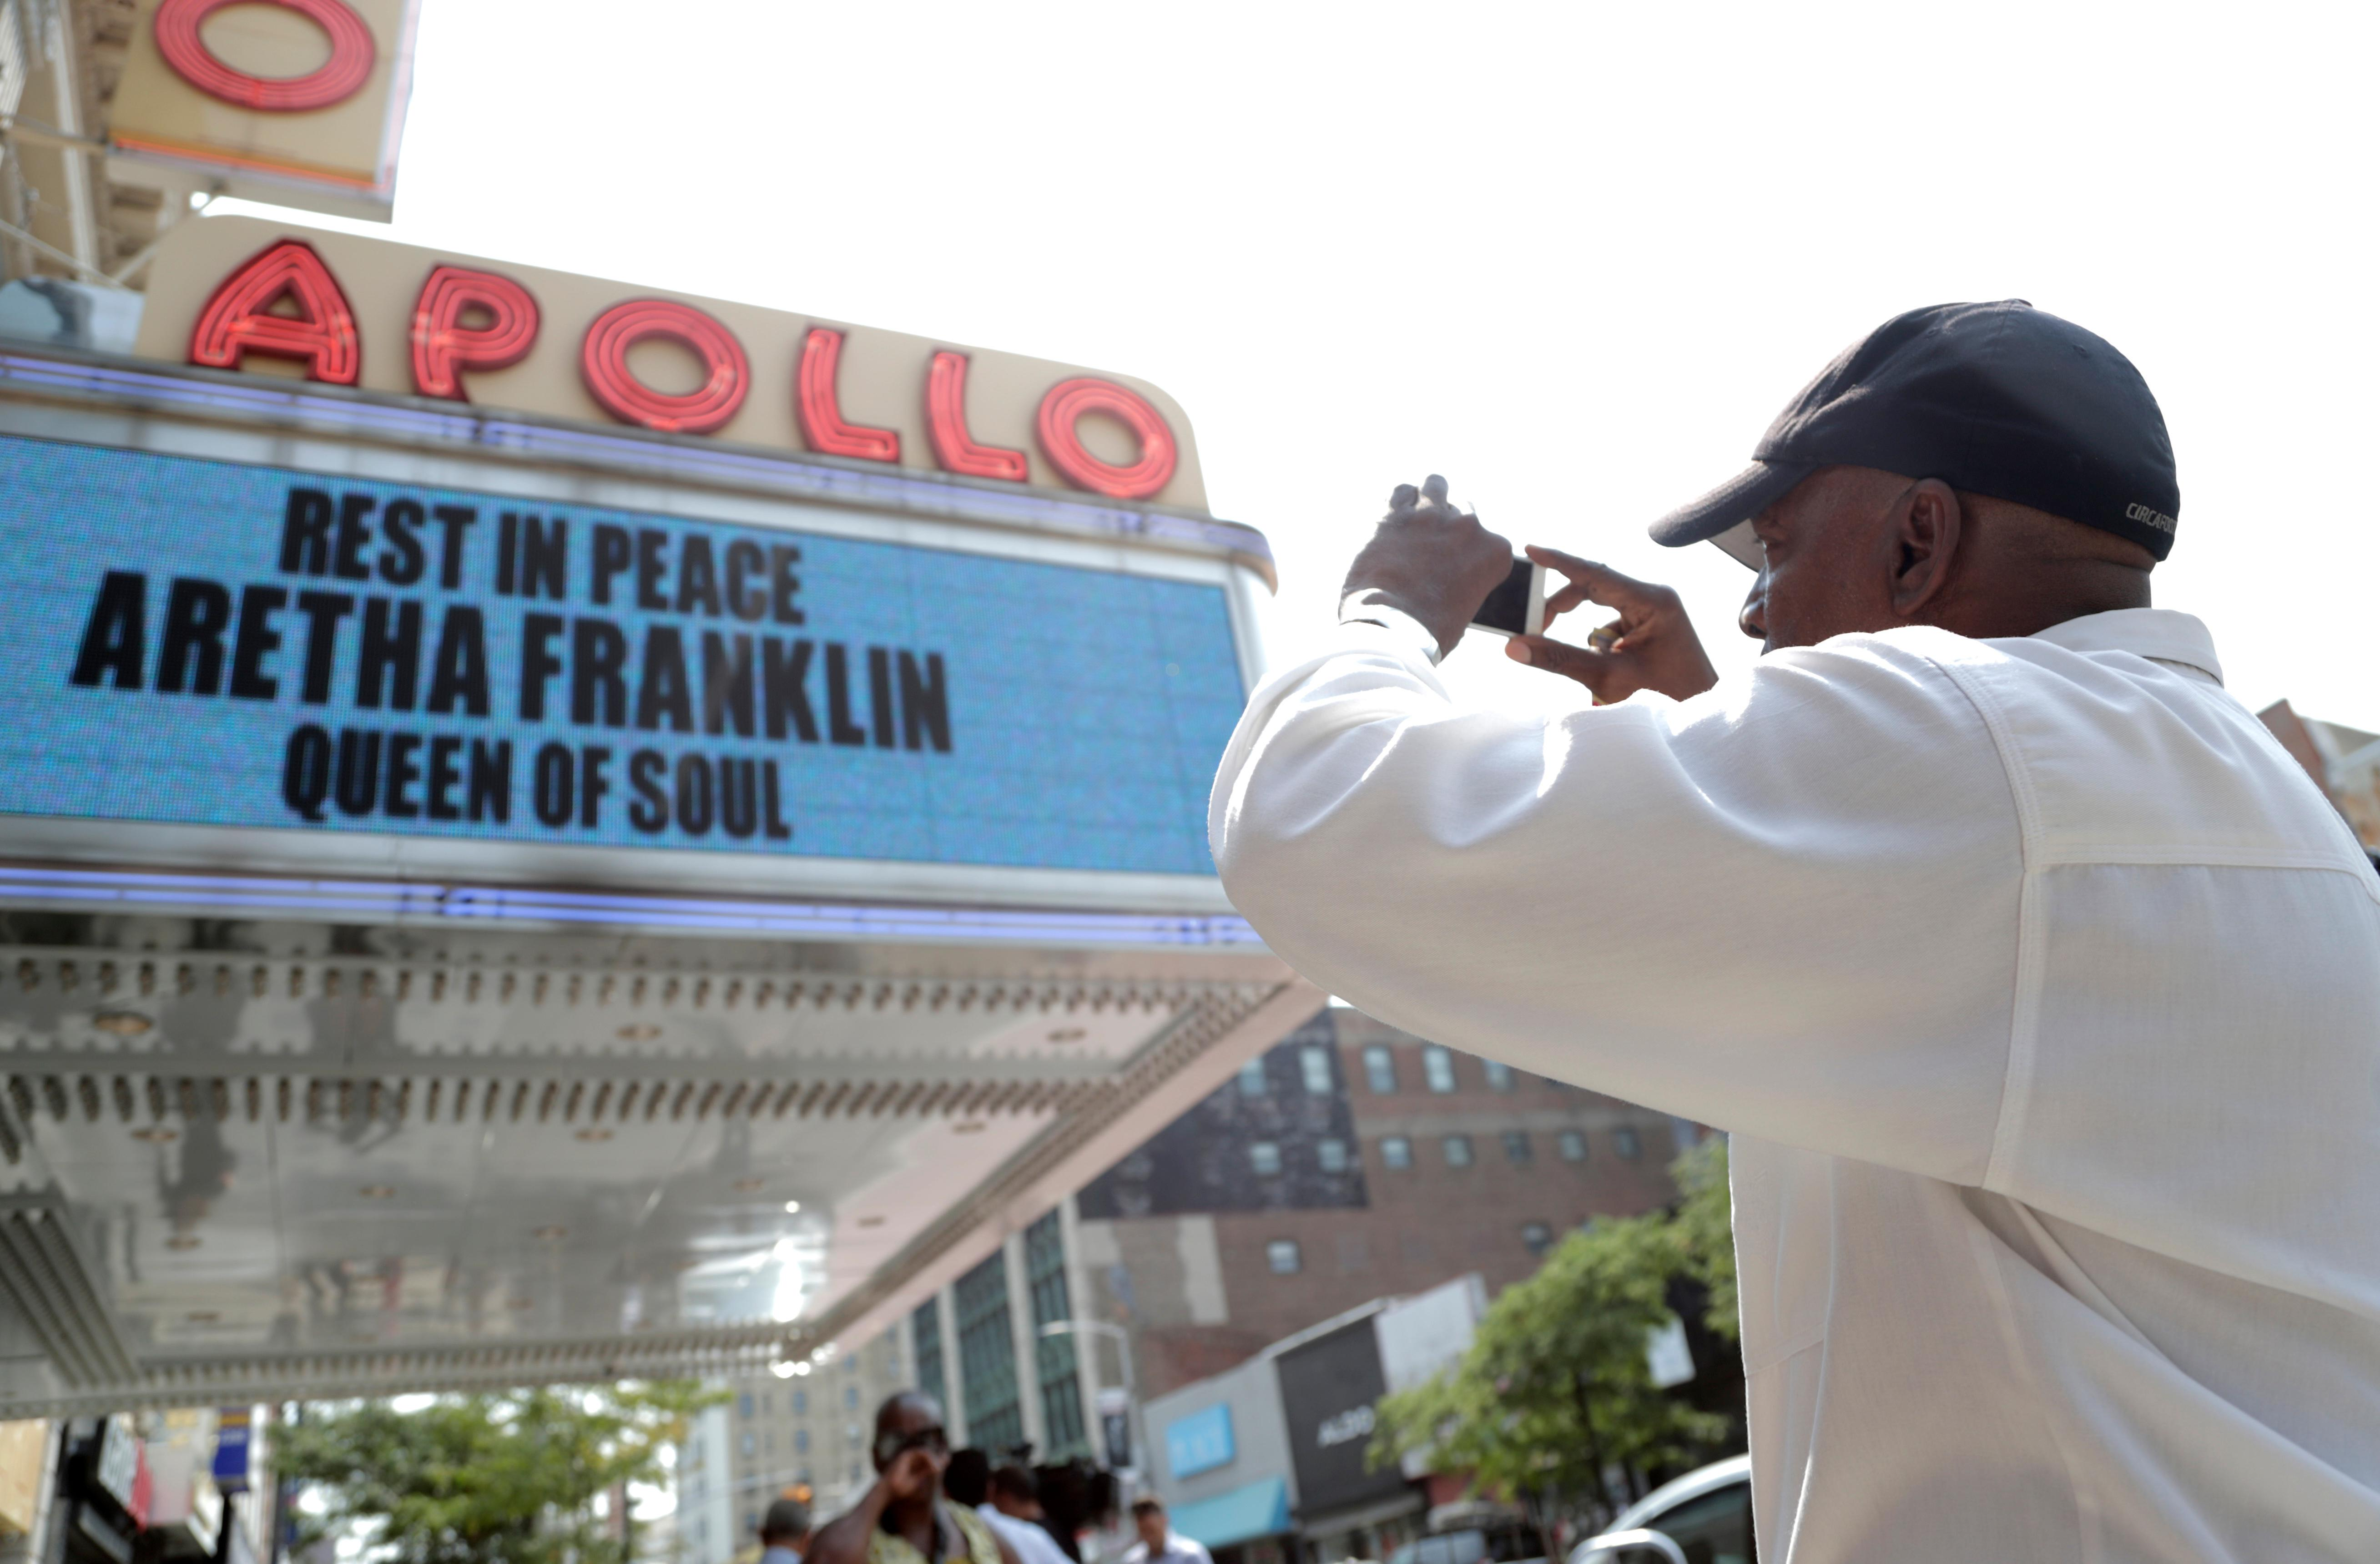 Ernie Spencer, of Westchester, N.Y., takes a photo of the marquee at the Apollo Theater, which displays a message honoring singer Aretha Franklin, Thursday, Aug. 16, 2018, in the Harlem section of New York. Franklin died in her home in Detroit at age 76 from pancreatic cancer. (AP Photo/Julio Cortez)